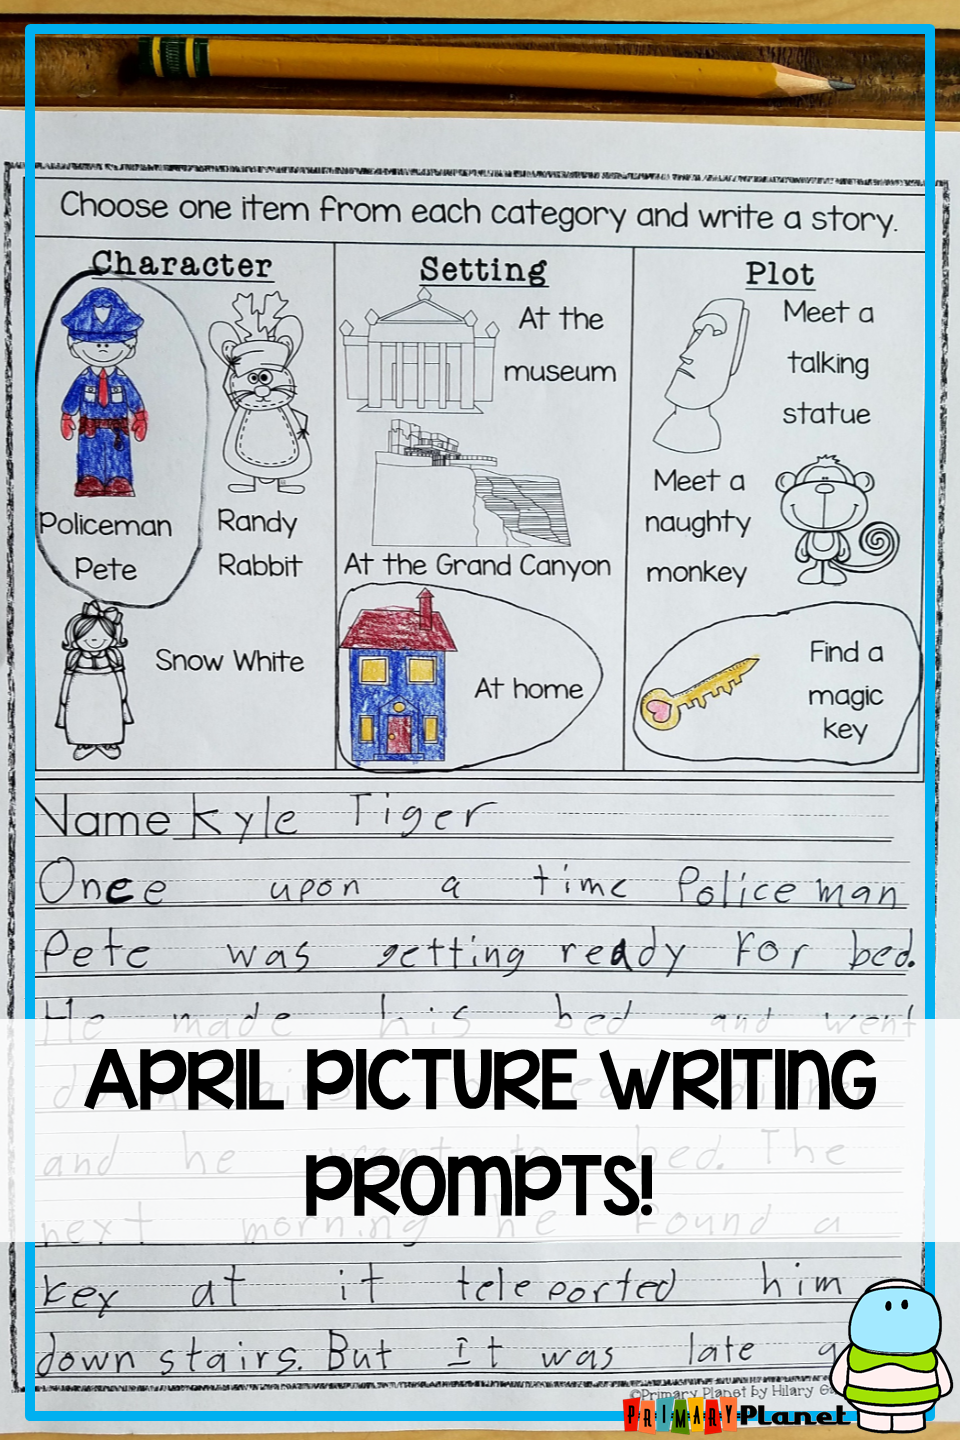 These No Prep Printable Picture Writing Prompts For Kids Are Interesting Imaginative Picture Writing Prompts Writing Prompts For Kids Spring Writing Prompts [ 1440 x 960 Pixel ]